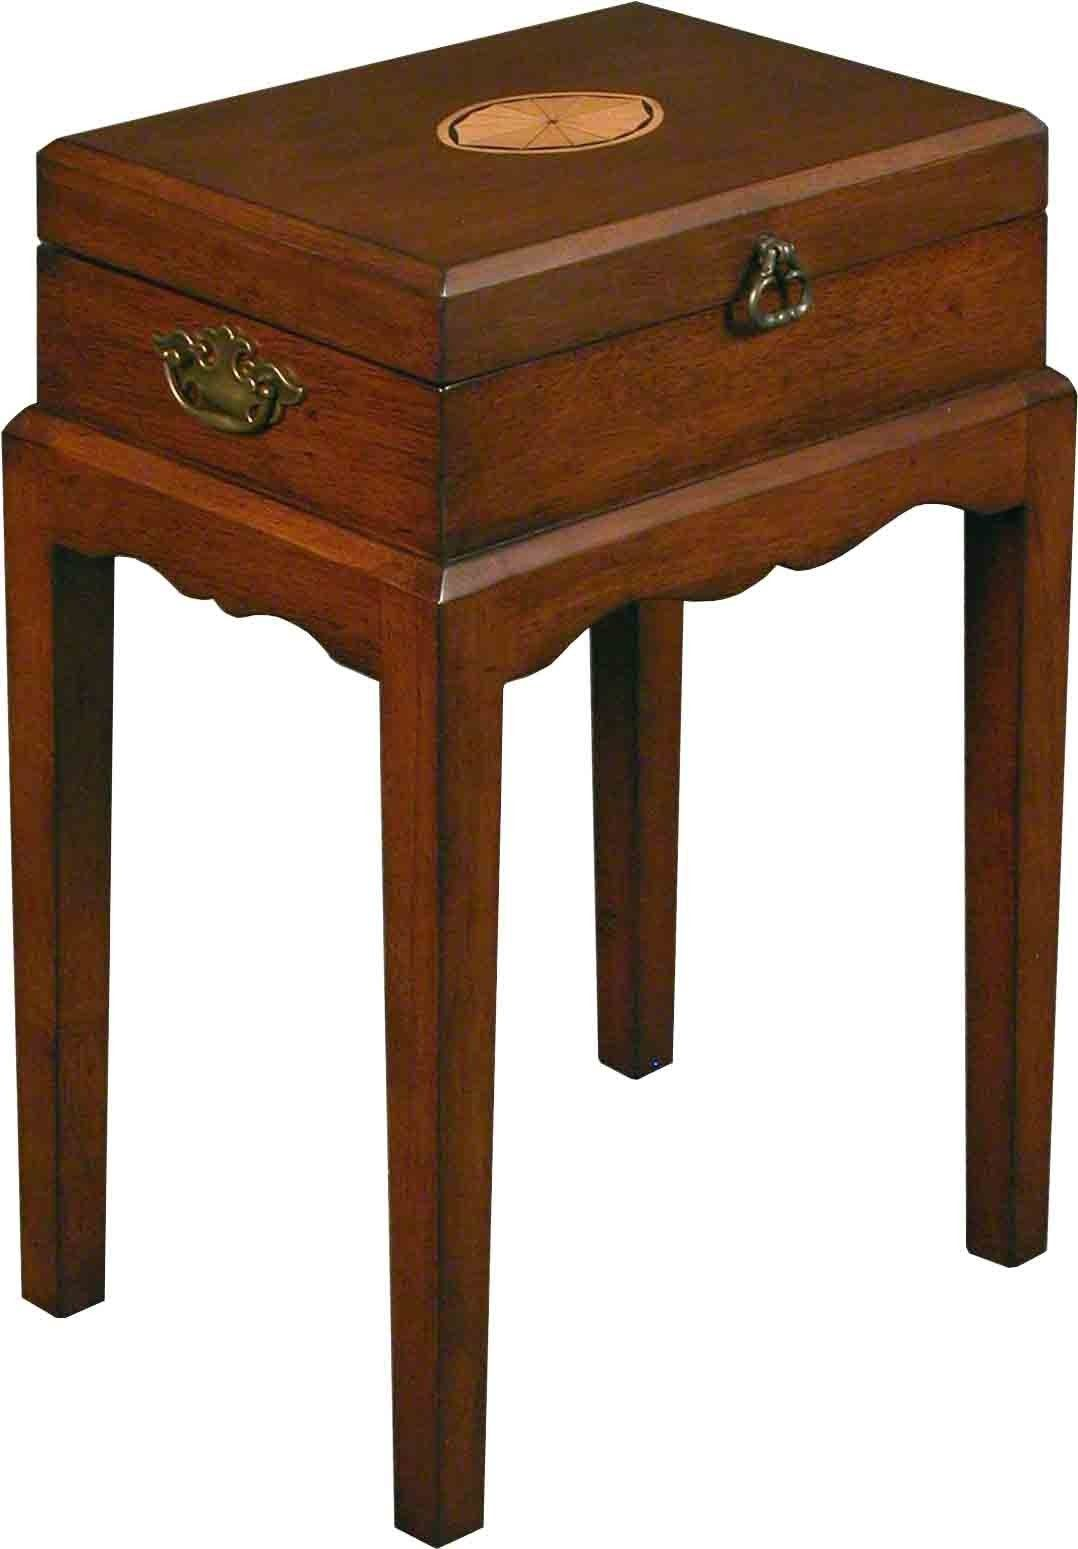 Mahogany chair side table with hinged top chair side table mahogany chair side table with hinged top geotapseo Images